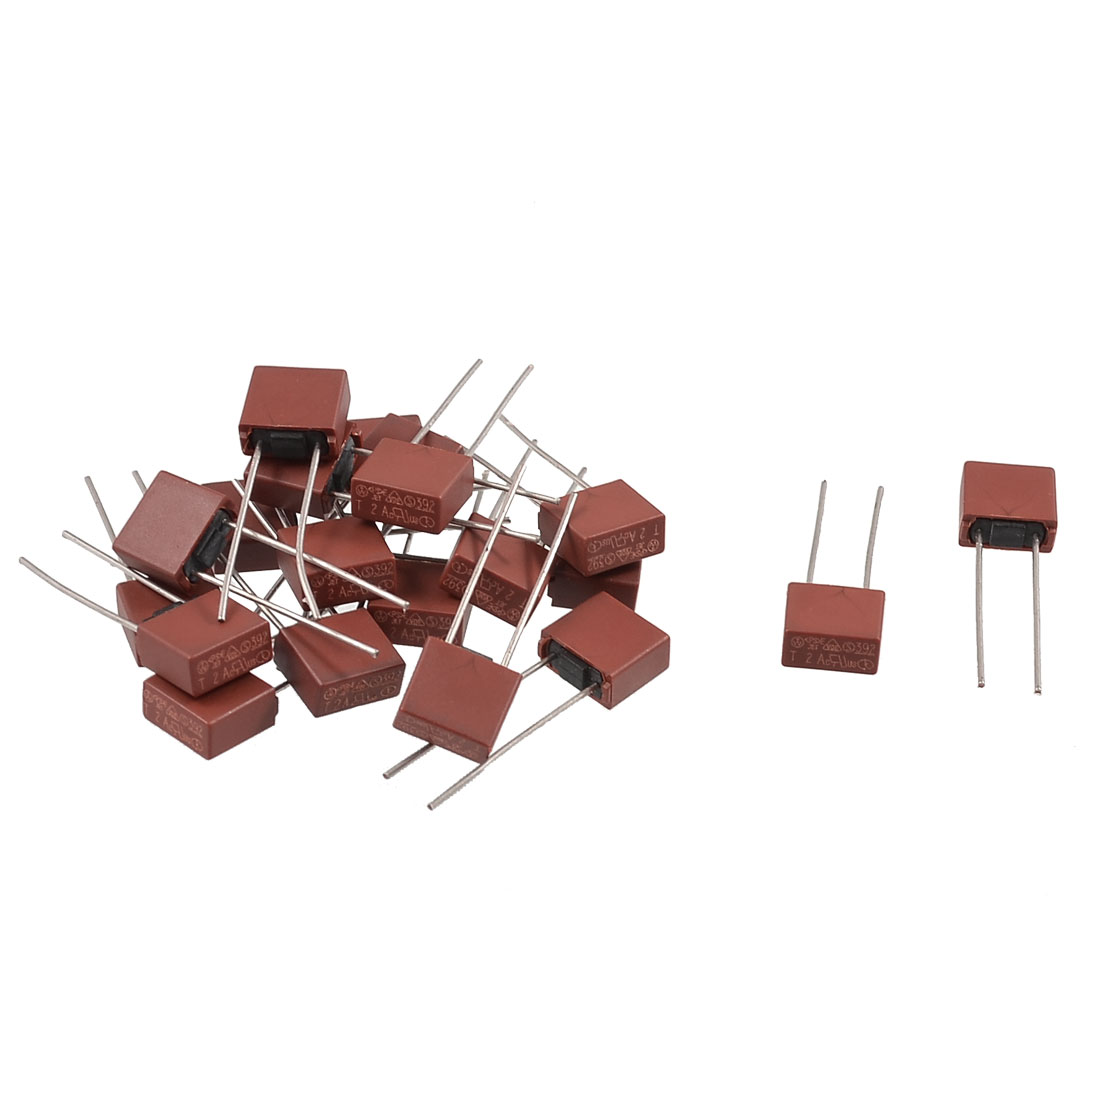 20 x Square Type Radial Leads Miniature Slow Blow Micro Fuse T5A 250V